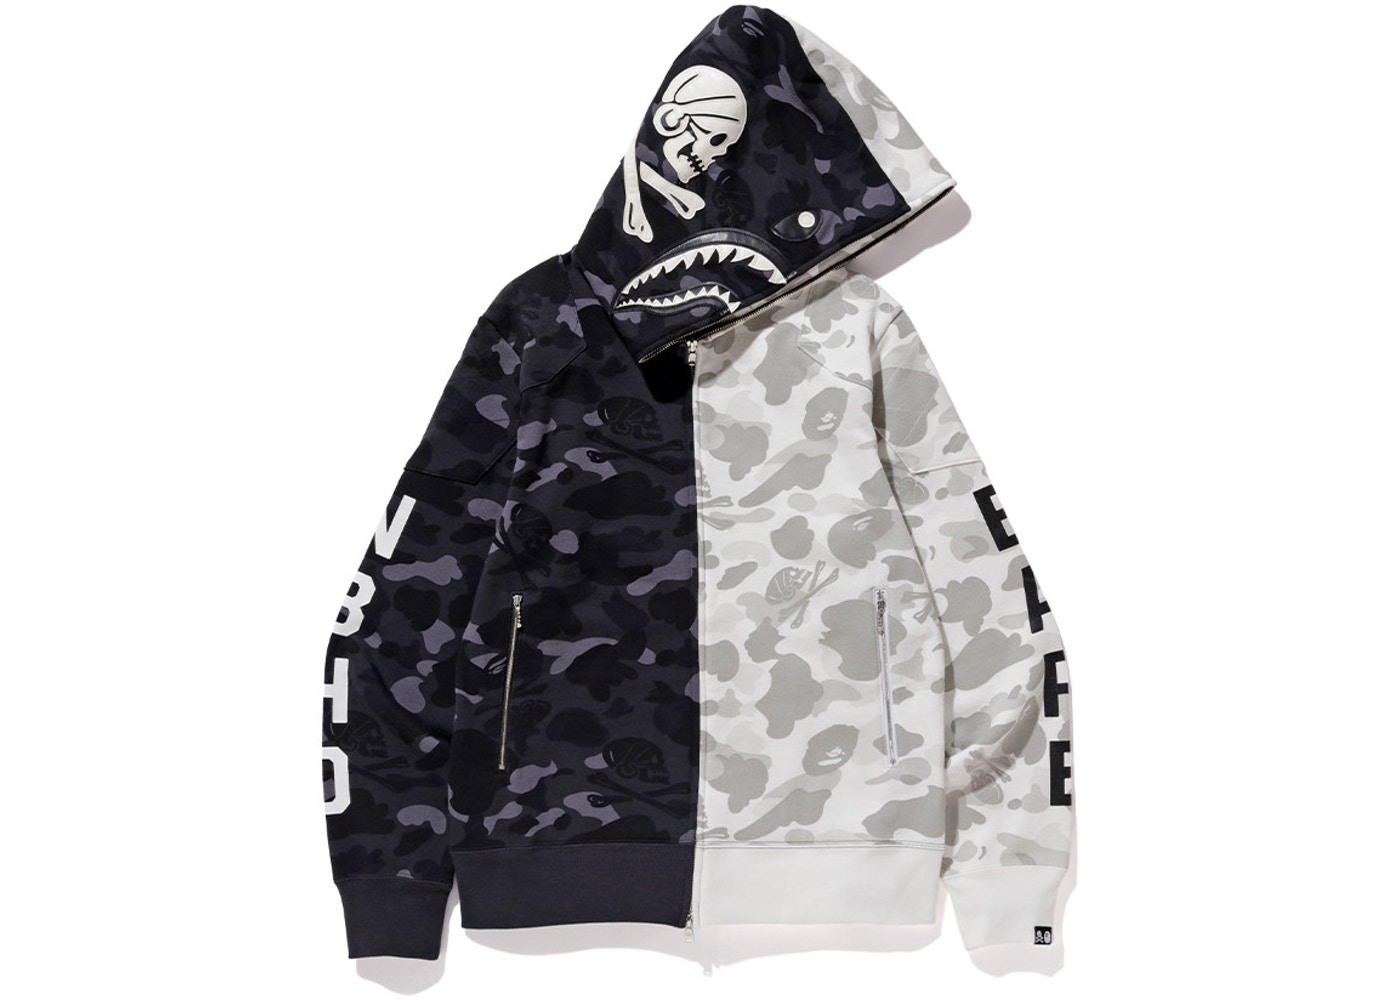 924e81a4 BAPE x Neighborhood Split Camo Shark Full Zip Hoodie Black/White - FW18